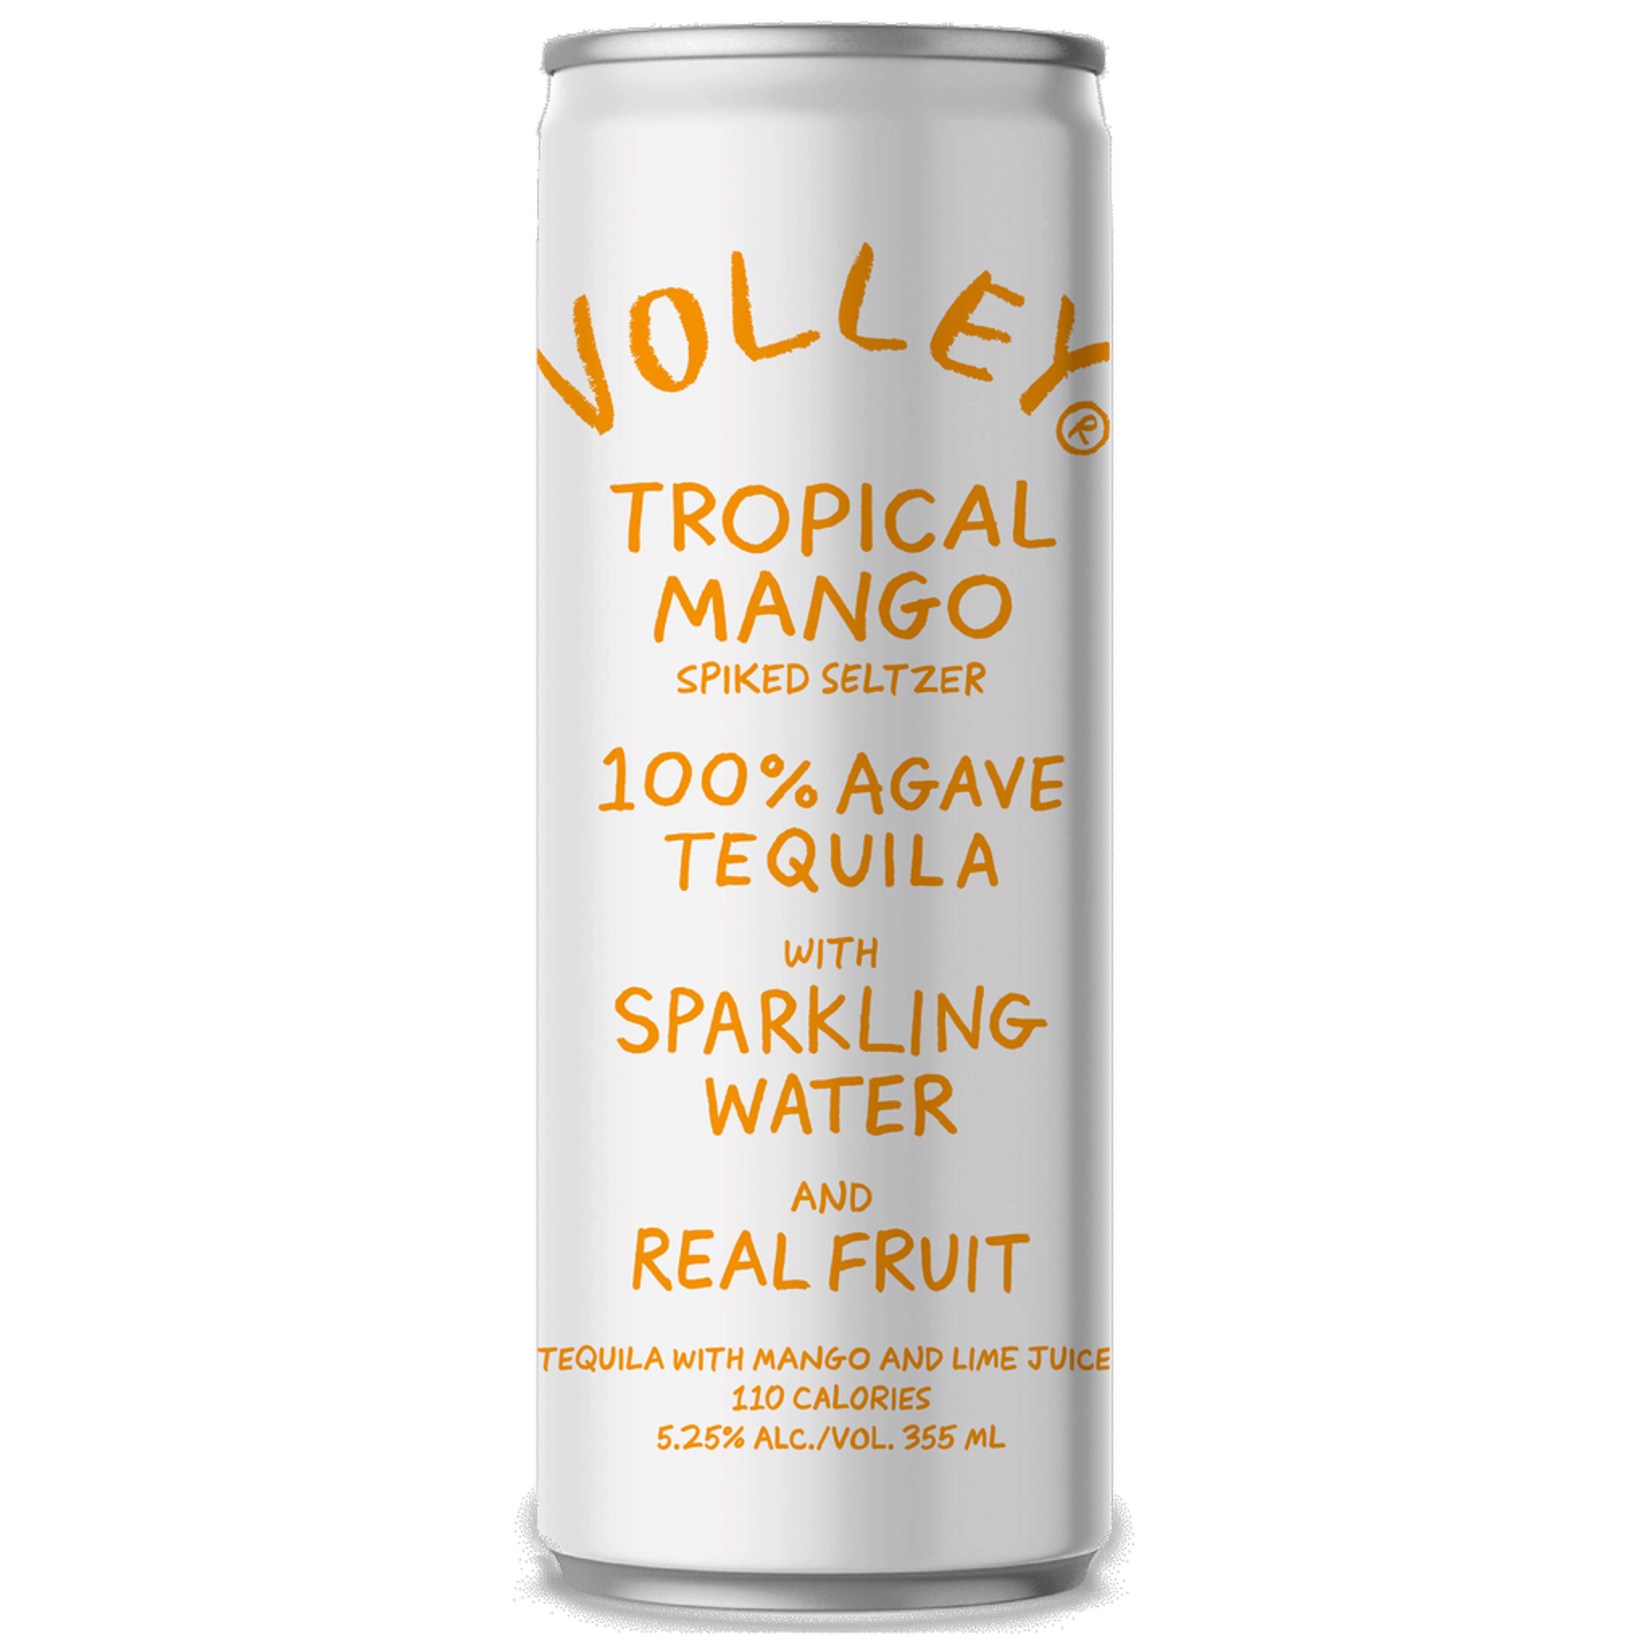 Spirits Volley Mixed Spiked Seltzer 4pack of 355ml cans